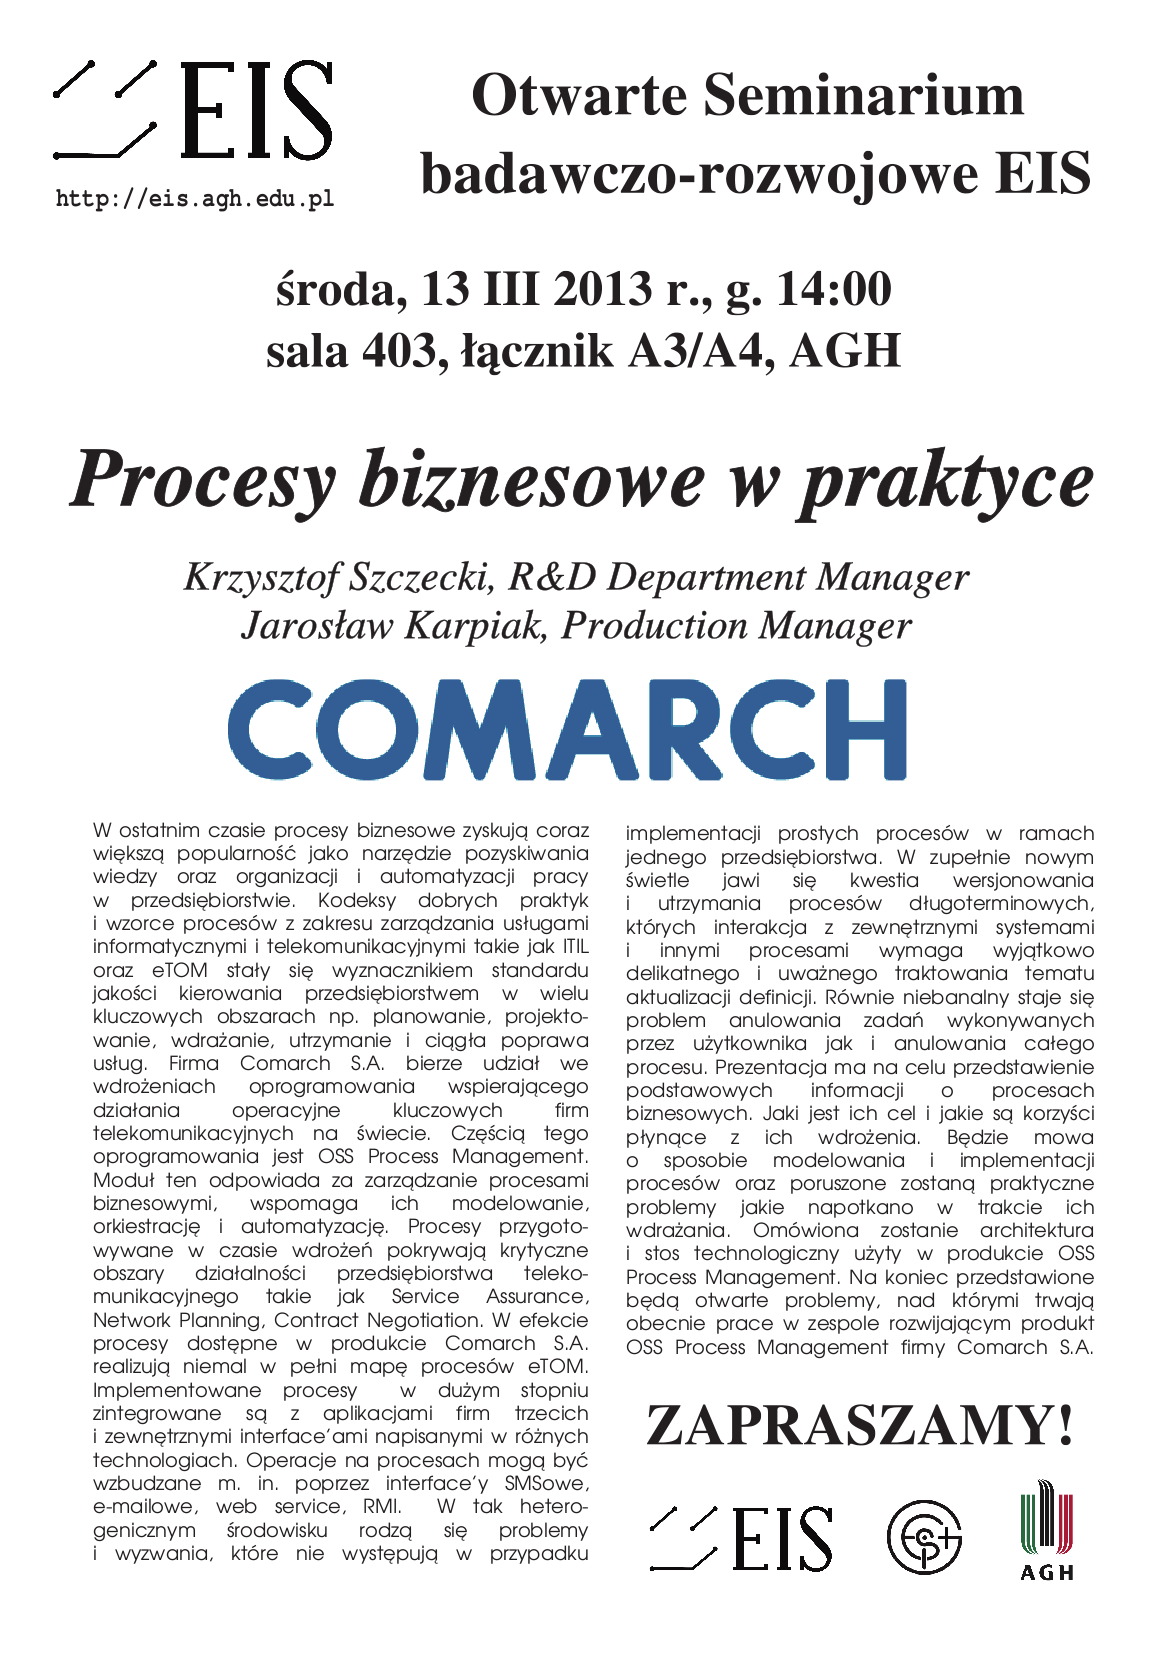 pub:teaching:courses:rnd2013-03-13-comarch.png